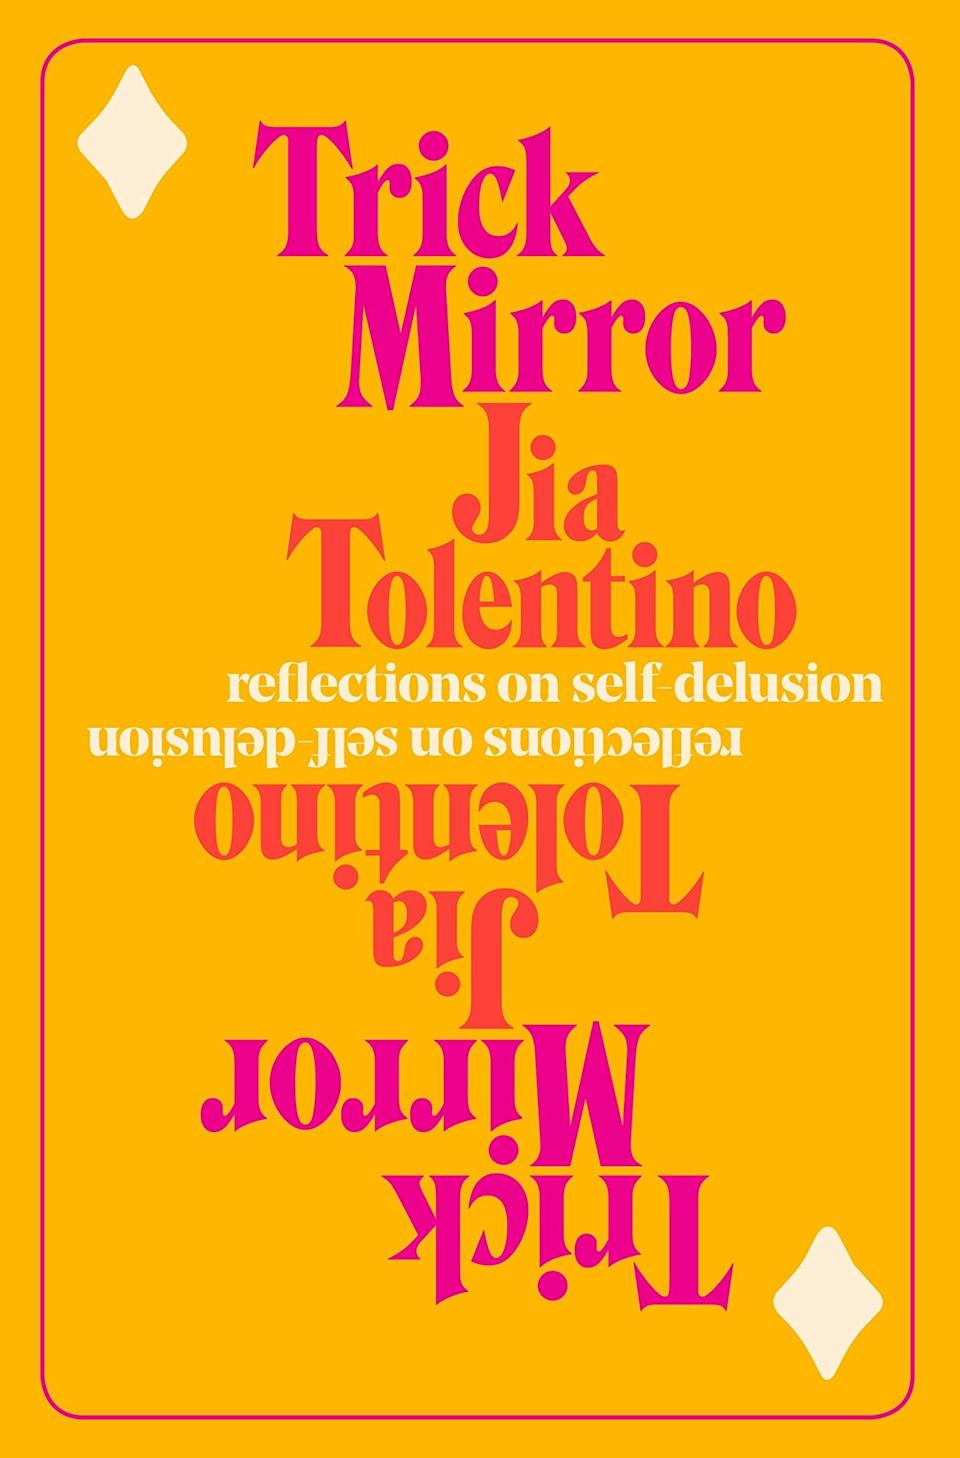 """Jia Tolentino has made a name for herself on the internet writing for <a href=""""https://www.newyorker.com/contributors/jia-tolentino?mbid=synd_yahoo_rss"""" rel=""""nofollow noopener"""" target=""""_blank"""" data-ylk=""""slk:The New Yorker"""" class=""""link rapid-noclick-resp""""><em>The New Yorker</em></a> about hot button topics like vaping, Outdoor Voices, and why we want celebrities to run us over. These nine new essays that make up her debut collection employ the same wit and singular critical eye to scammer culture, social media, the millennial experience, and more."""